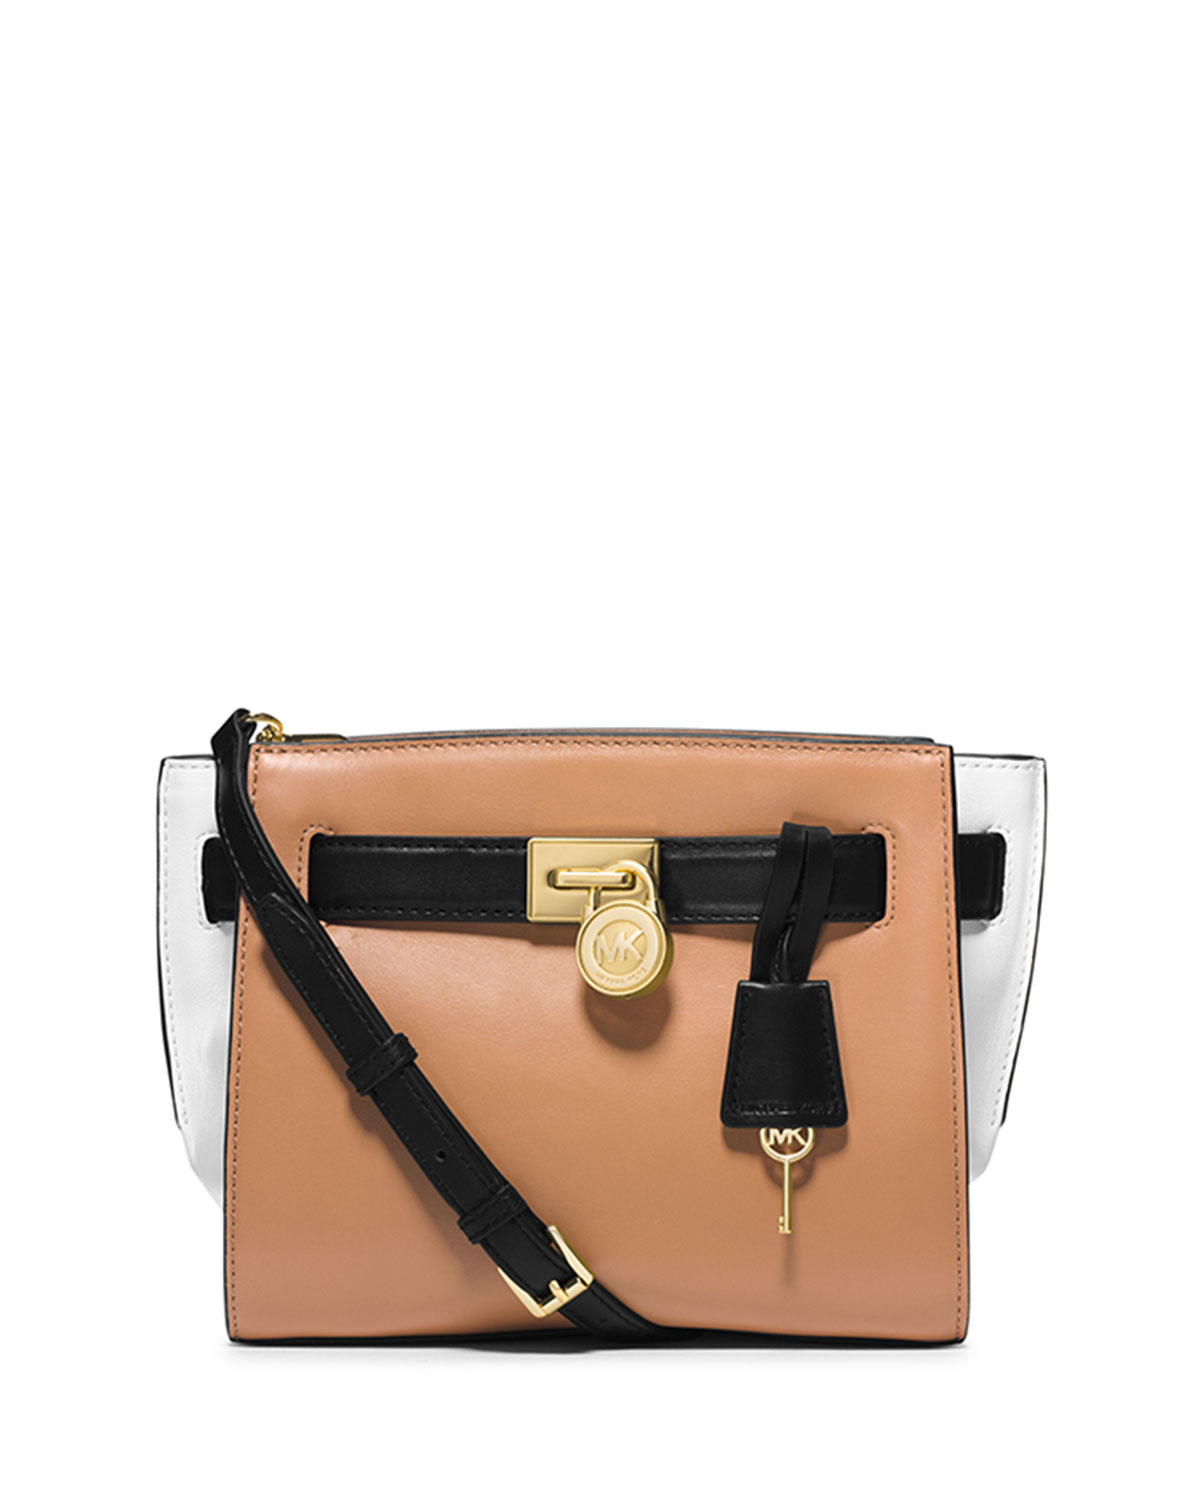 2f6853ca6a5b Gallery. Previously sold at: Neiman Marcus · Women's Michael By Michael  Kors Hamilton ...